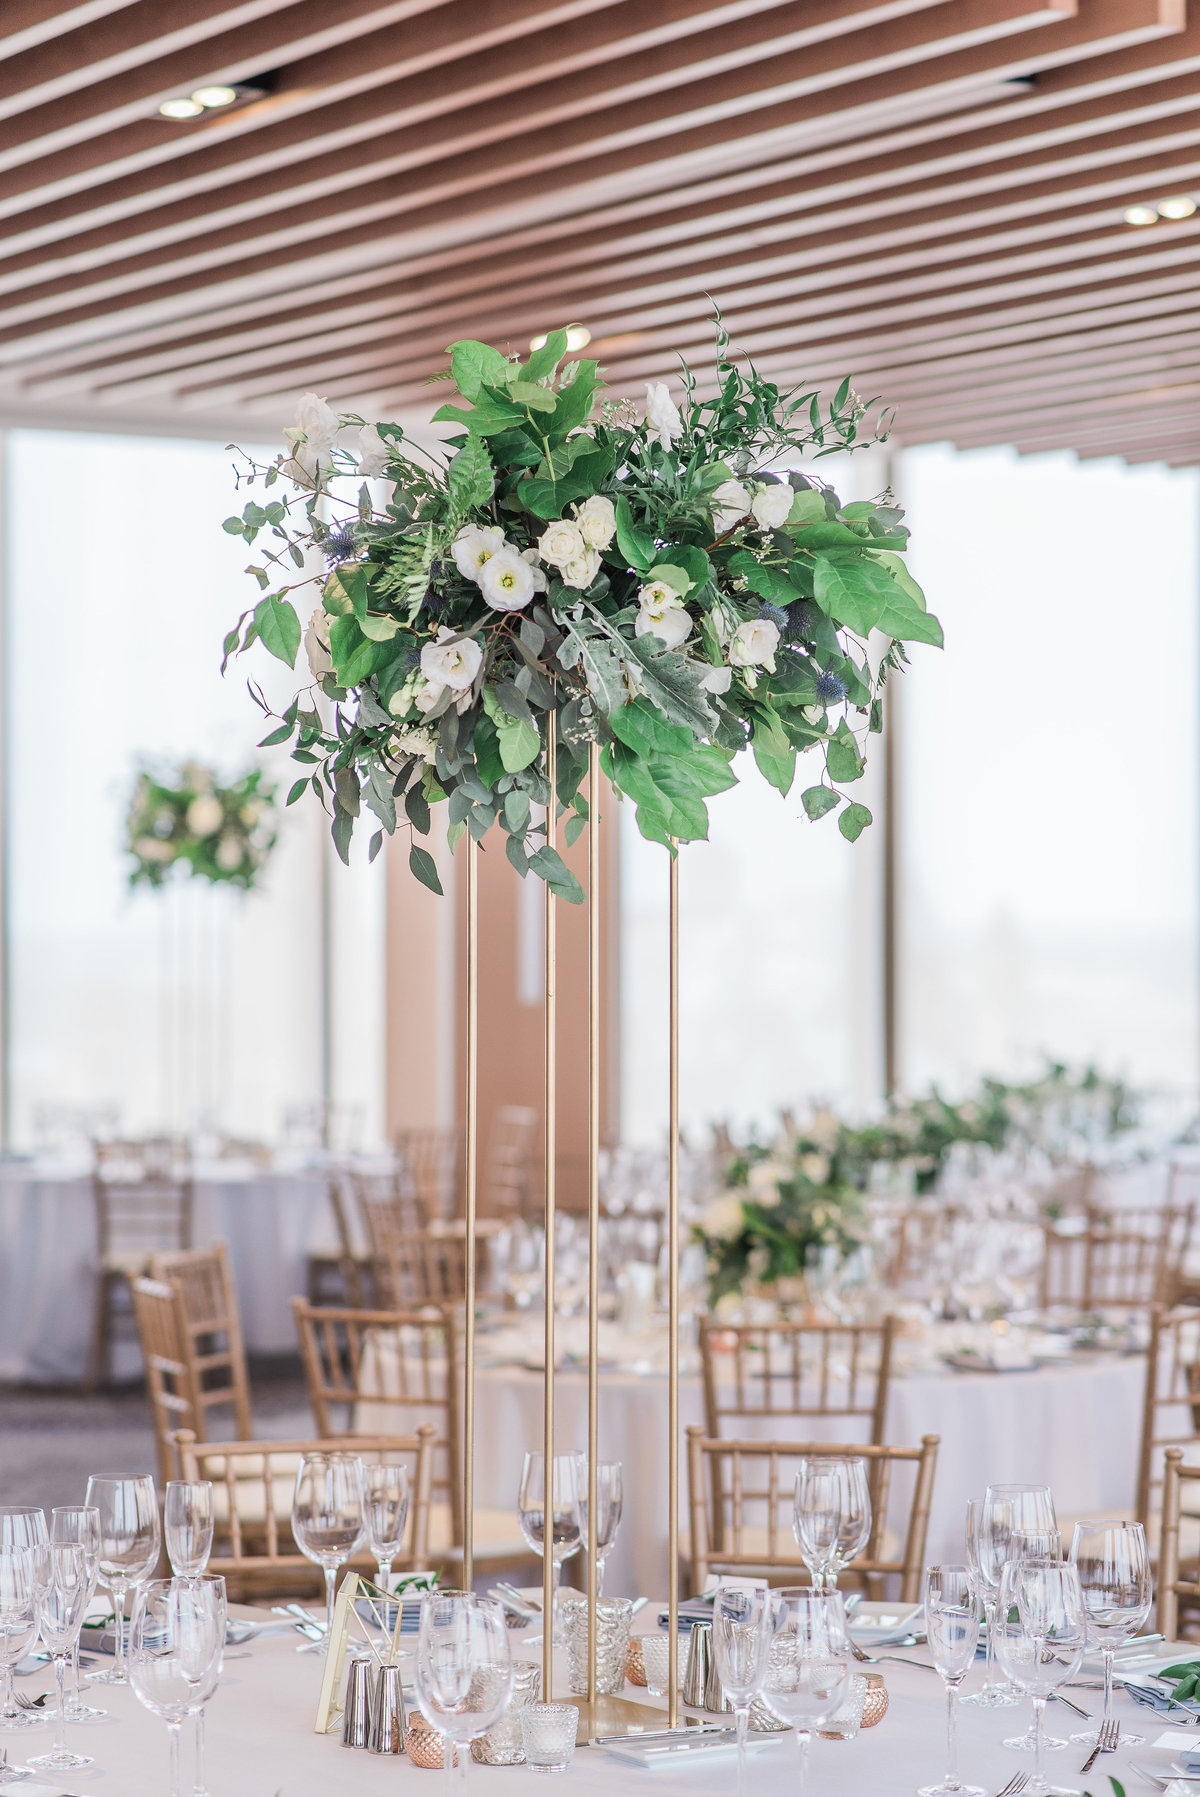 0019_Sage_Designs_at_Westin_22_White_florals_and_fresh_greens___Photography_by_Emma